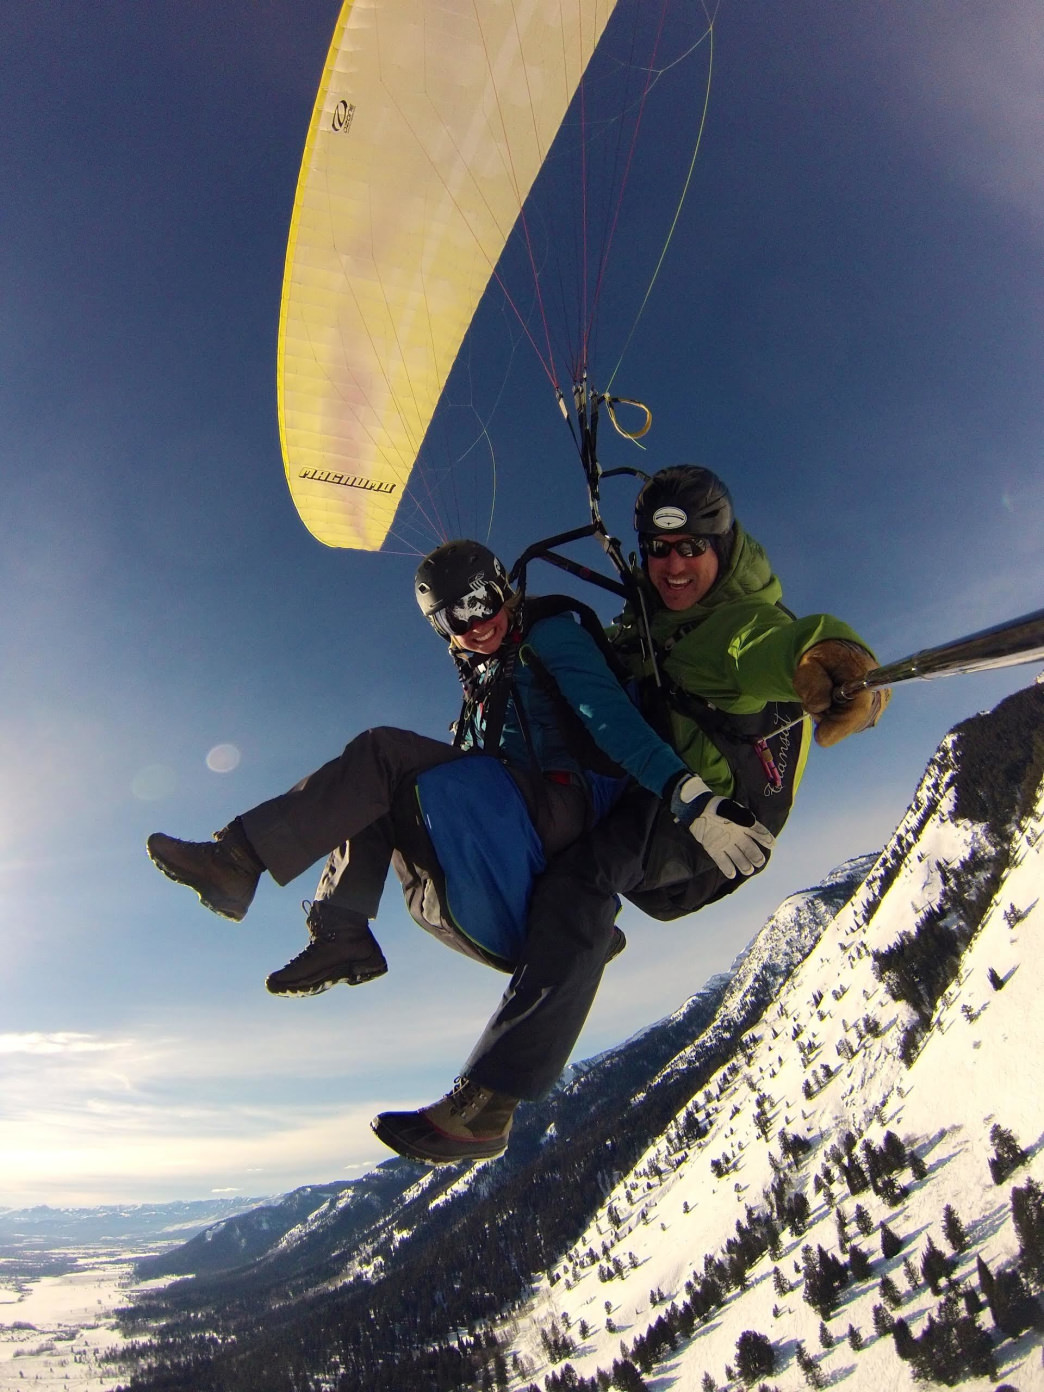 Soar high above the Tetons on a paragliding adventure.